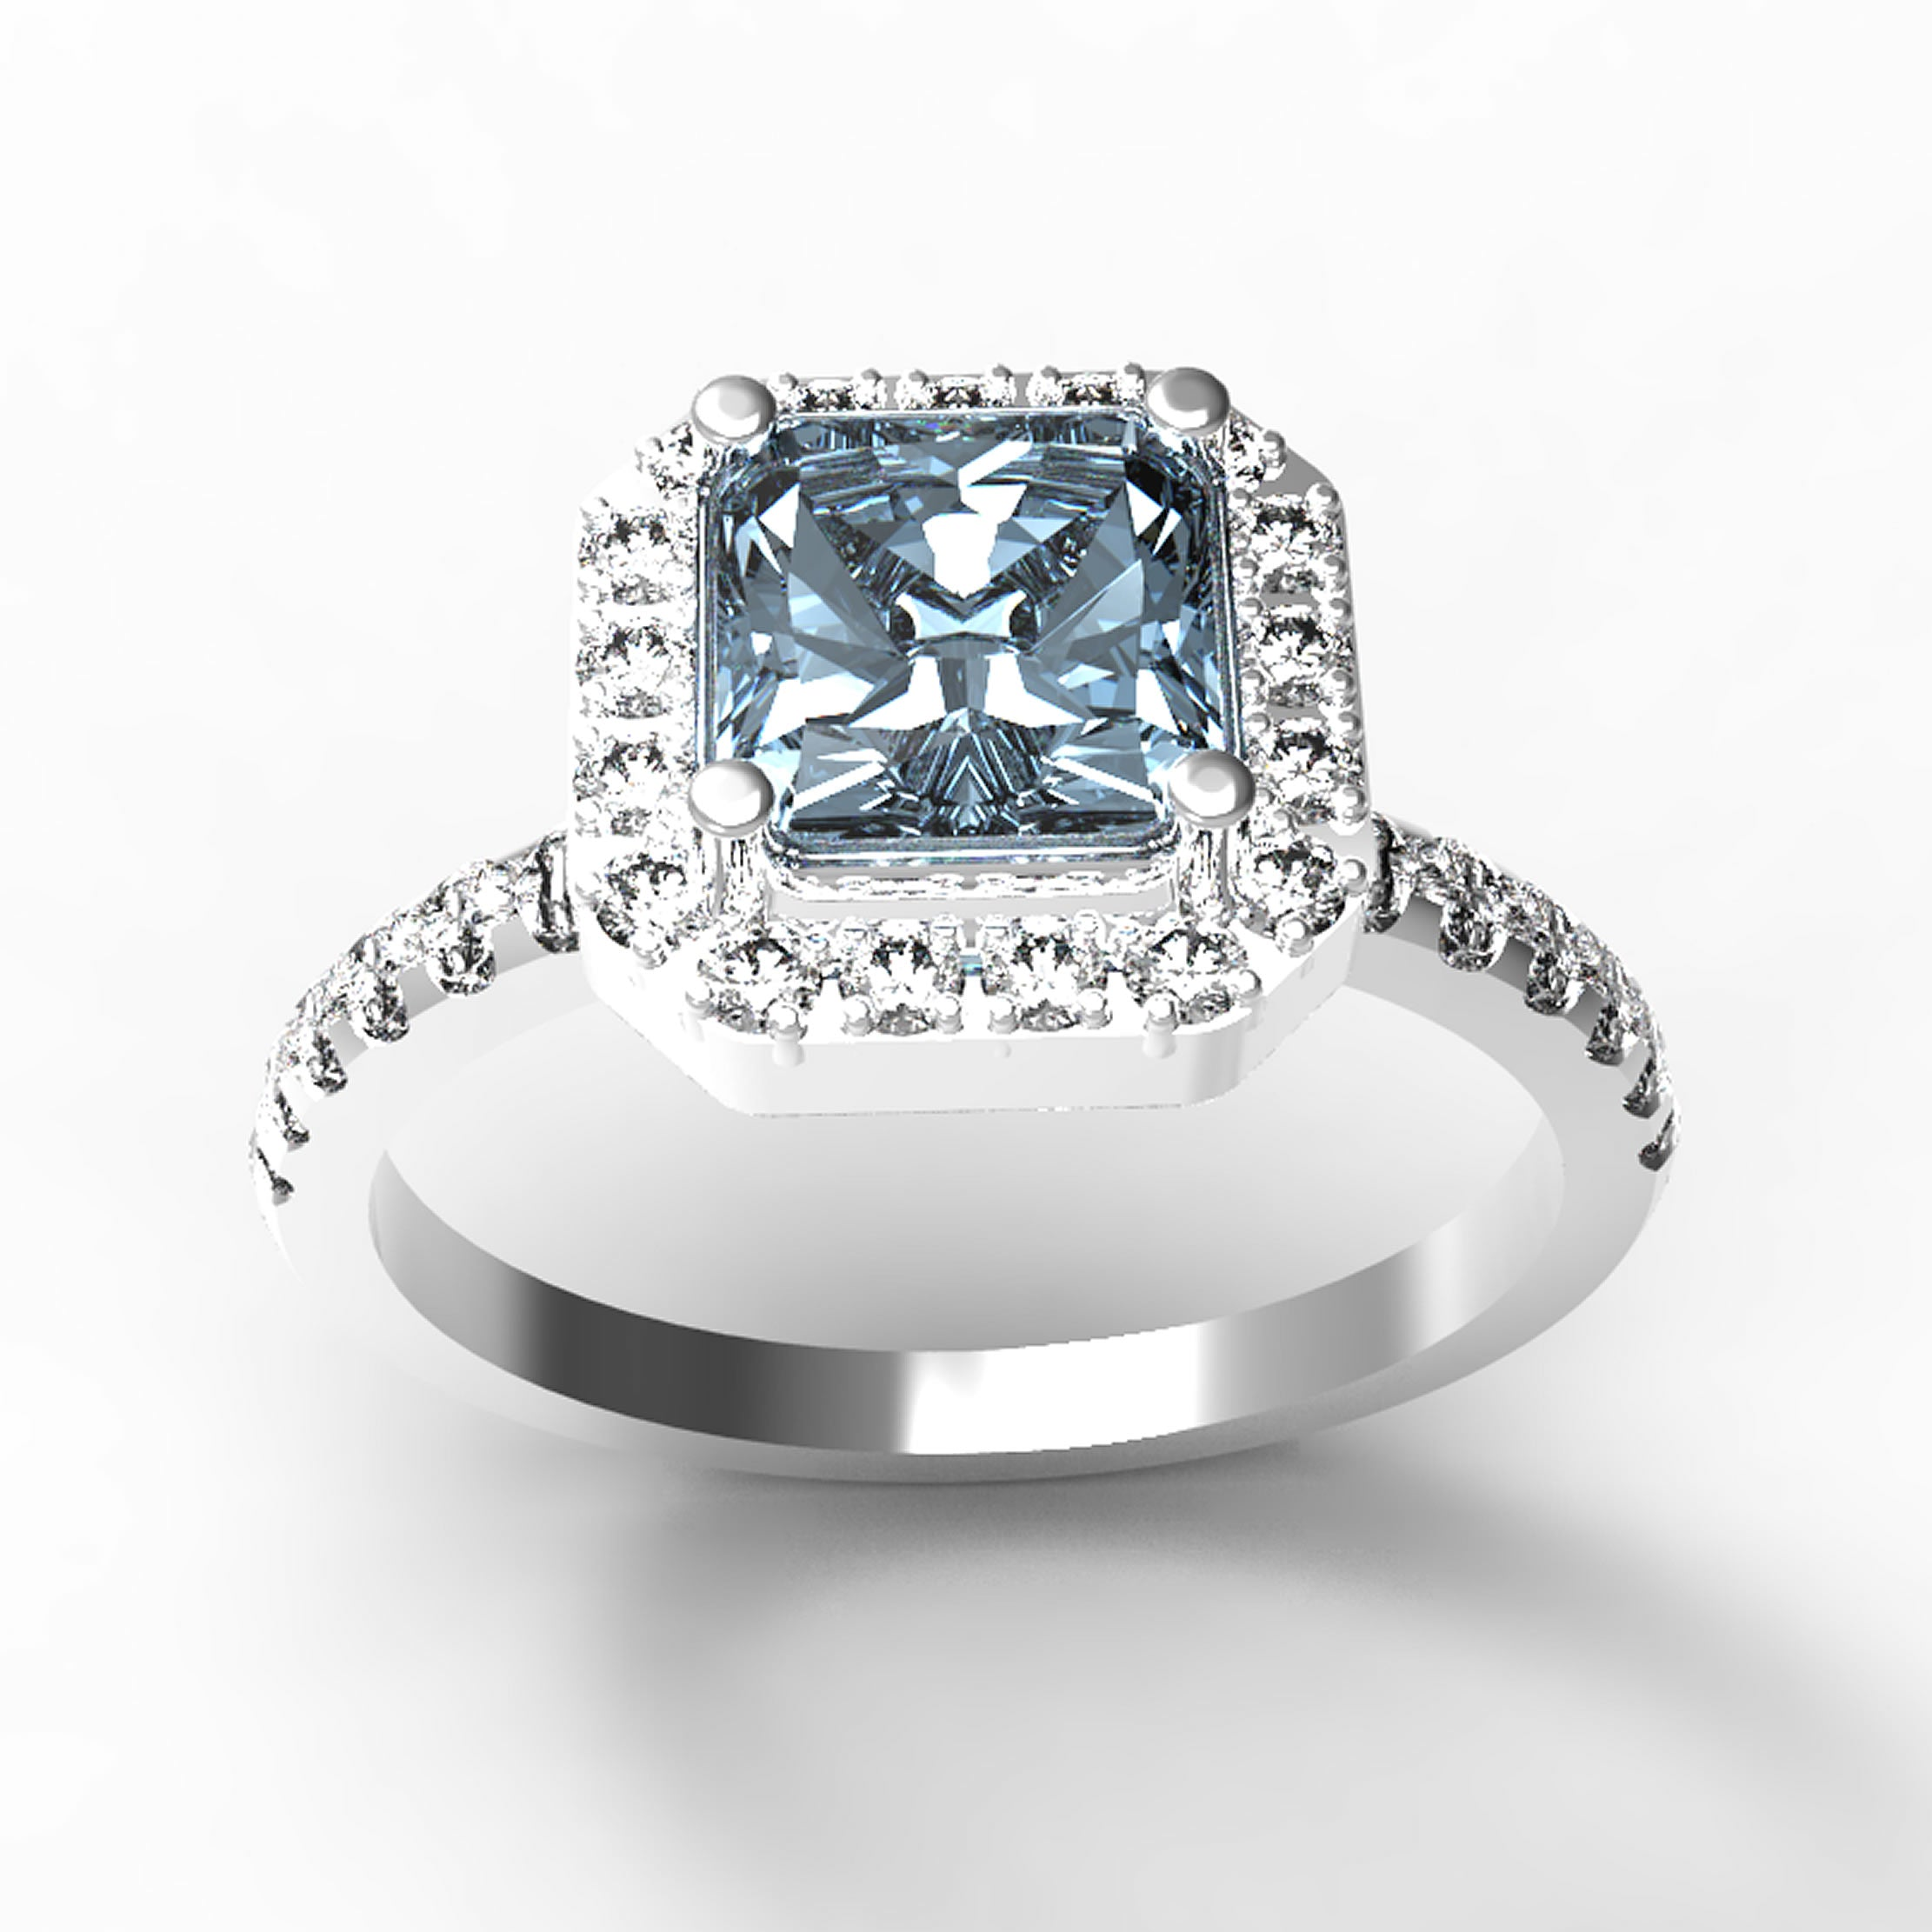 Aquamarine Gold Engagement Ring - 10GG67